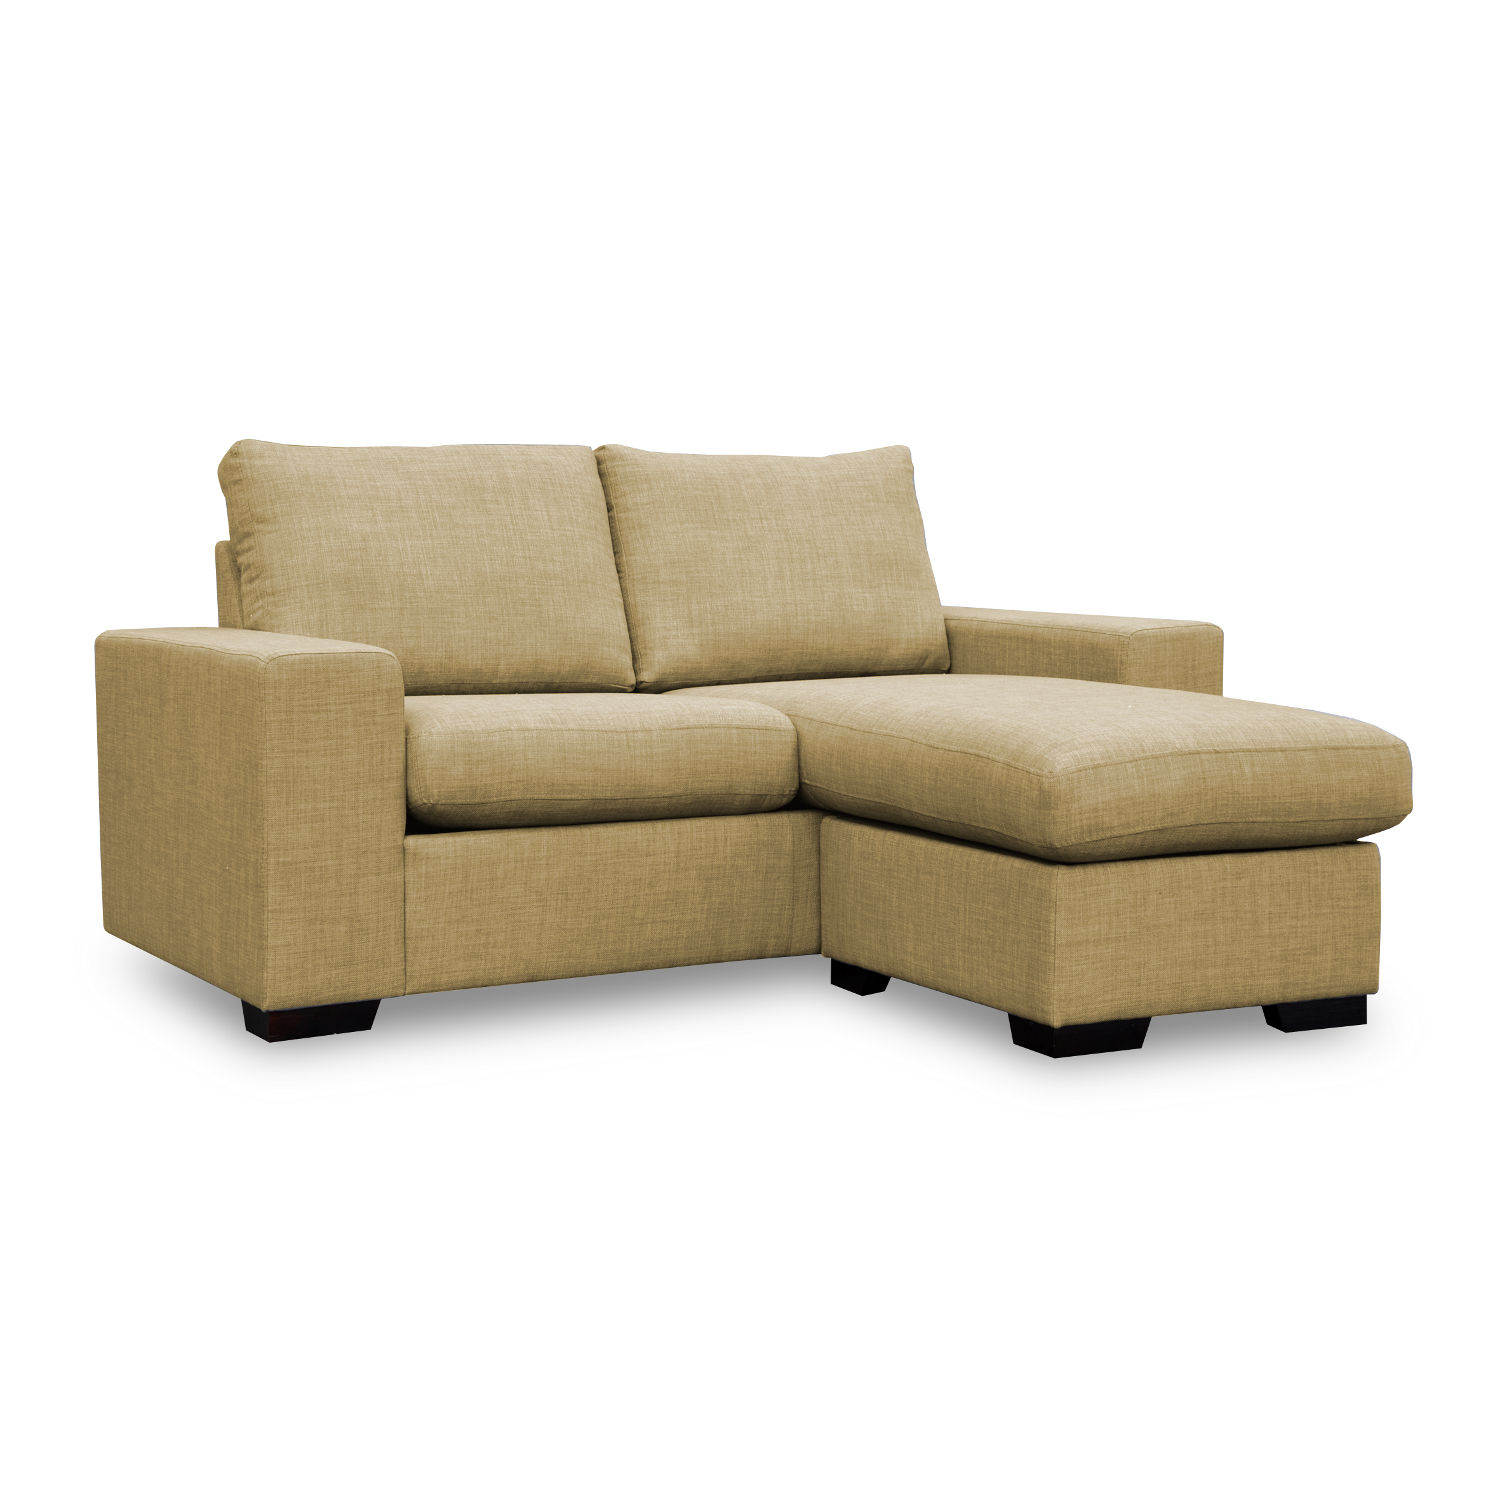 Tempurpedic Sleeper Sofa | Ikea Friheten Review | Moheda Sofa Bed